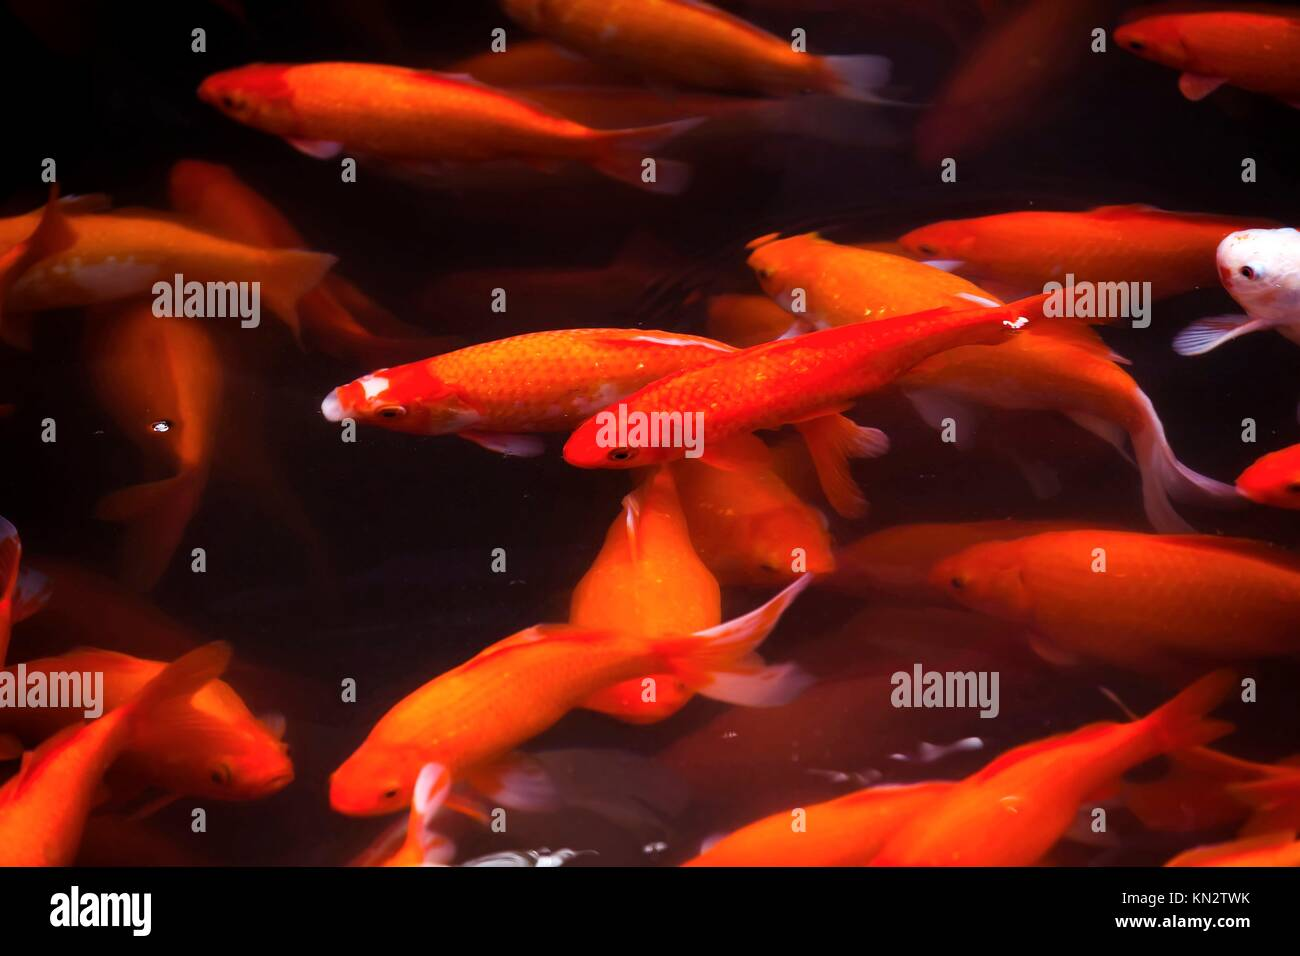 Red Gill Stock Photos & Red Gill Stock Images - Page 5 - Alamy